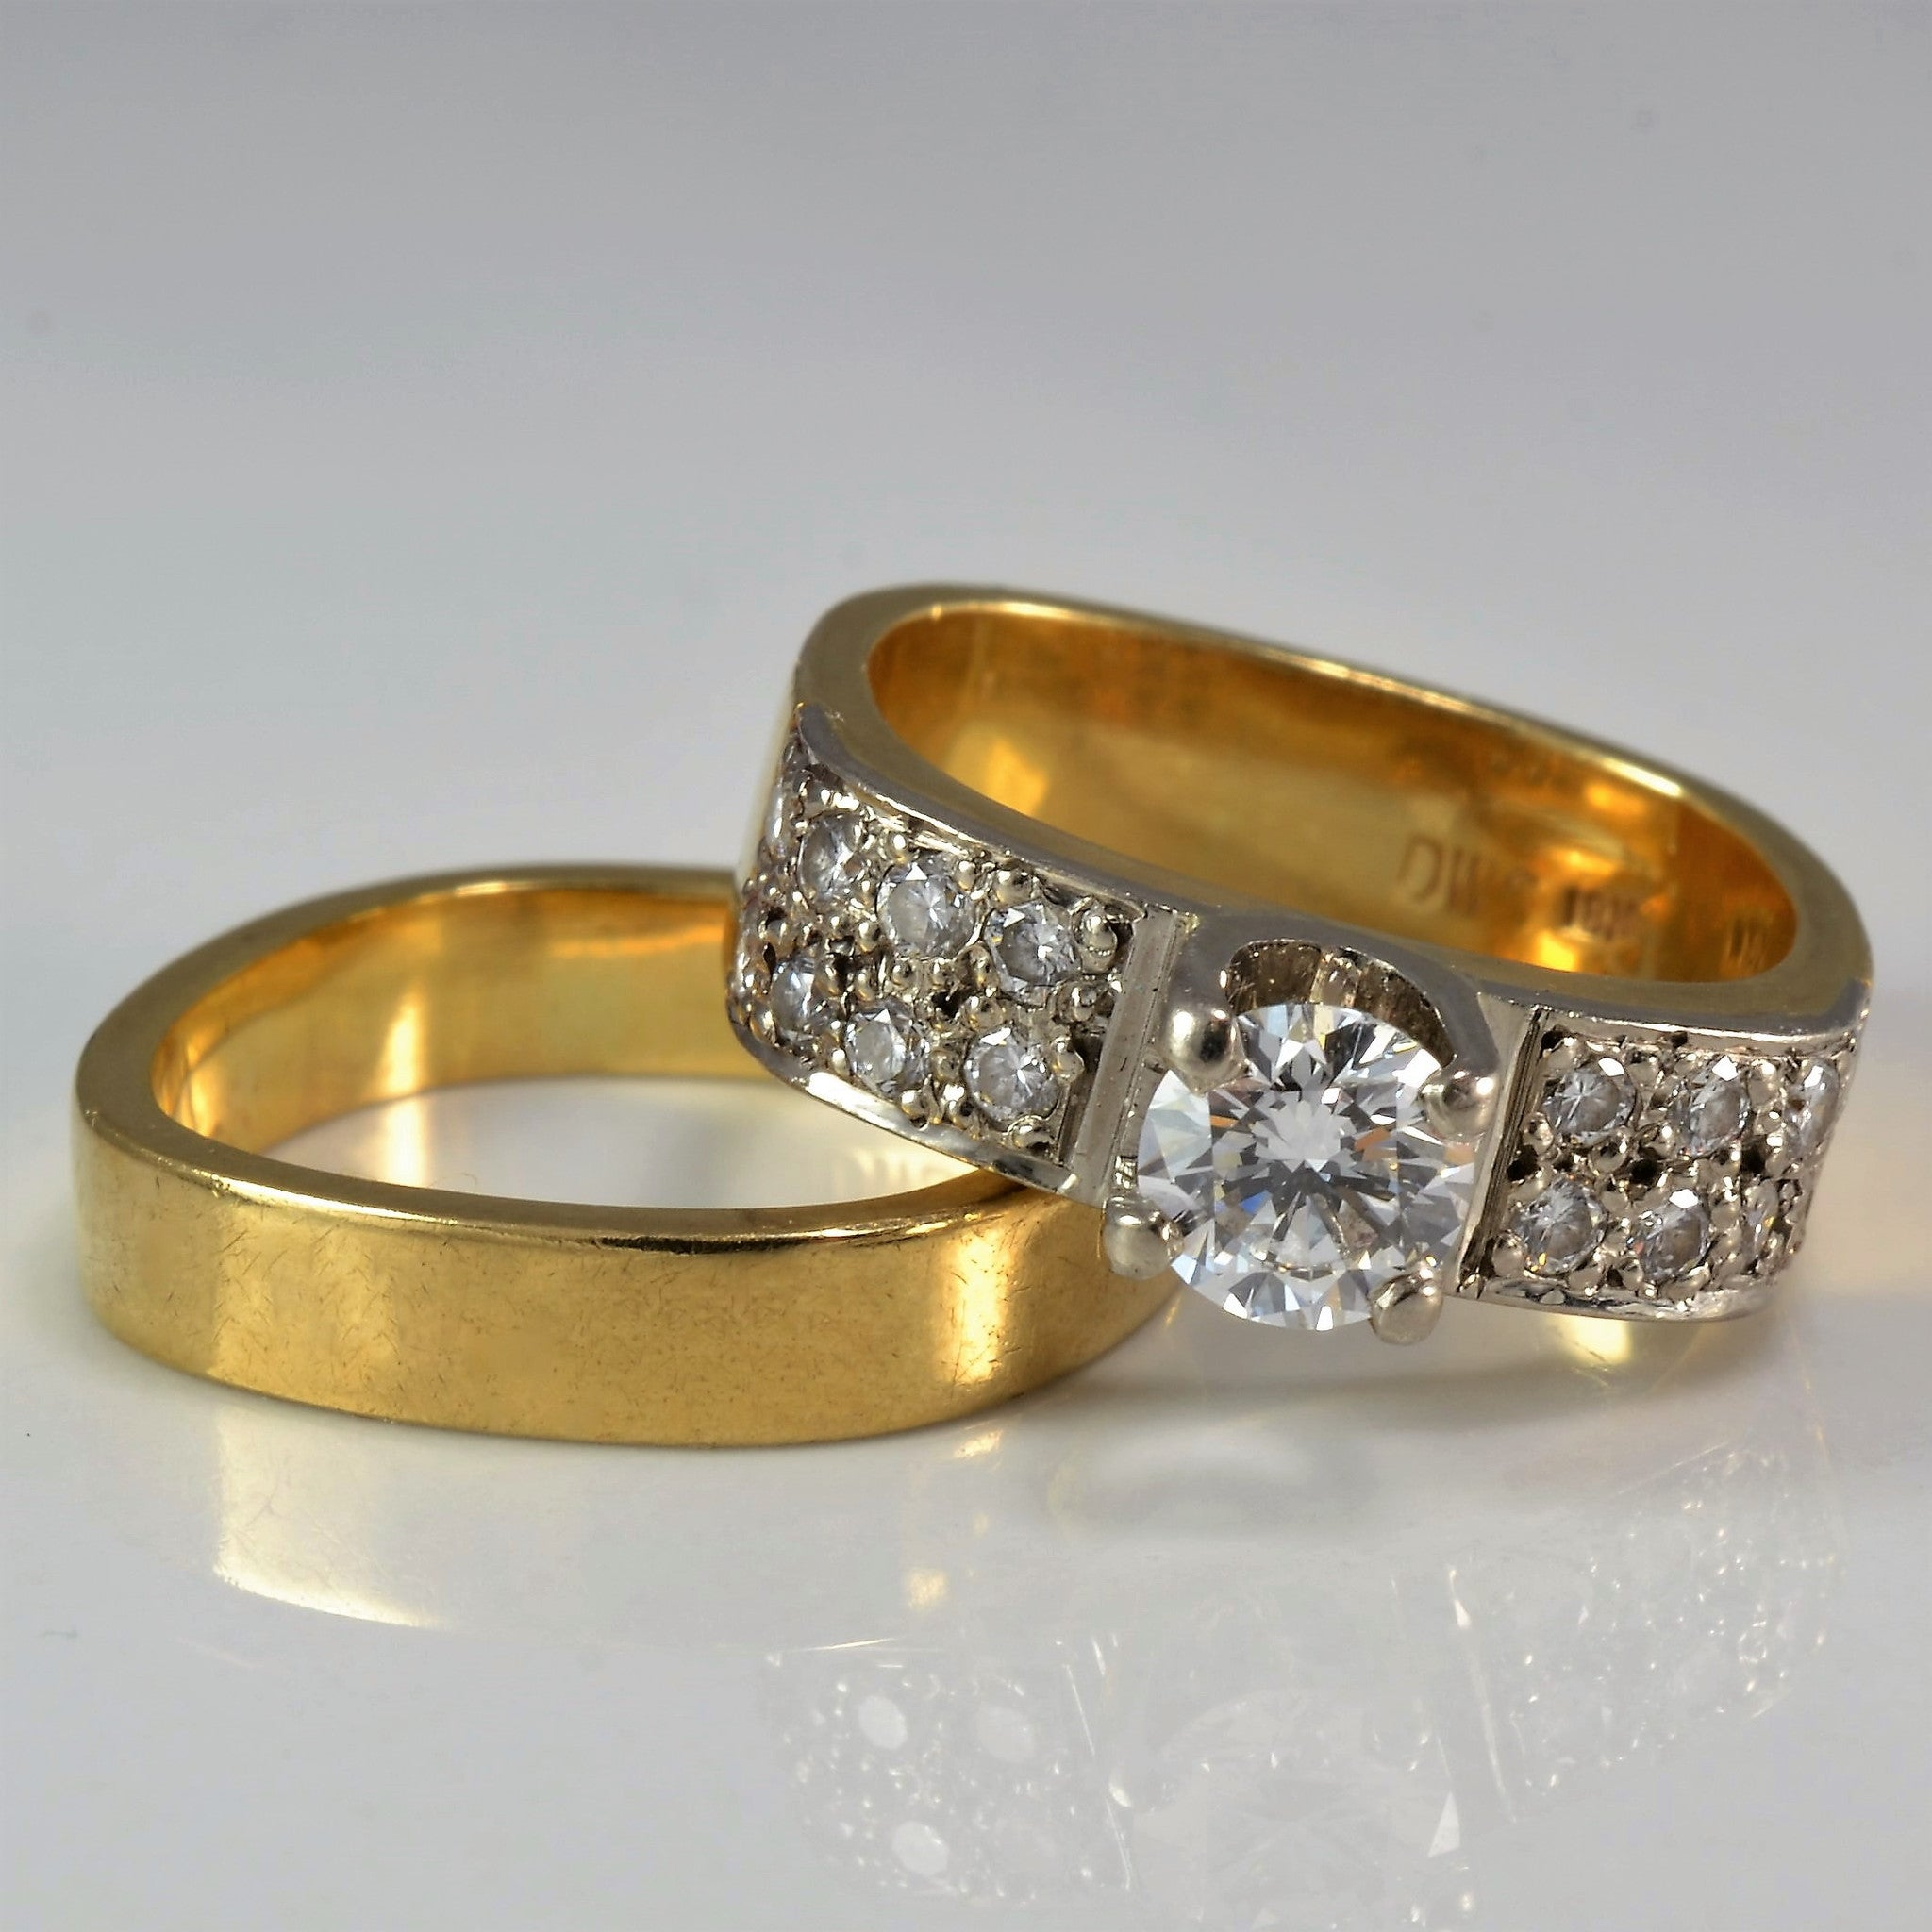 rings discounted yellow bands wedding jewelry princess wide engagement with white ring diamond band in cut nl yg gold